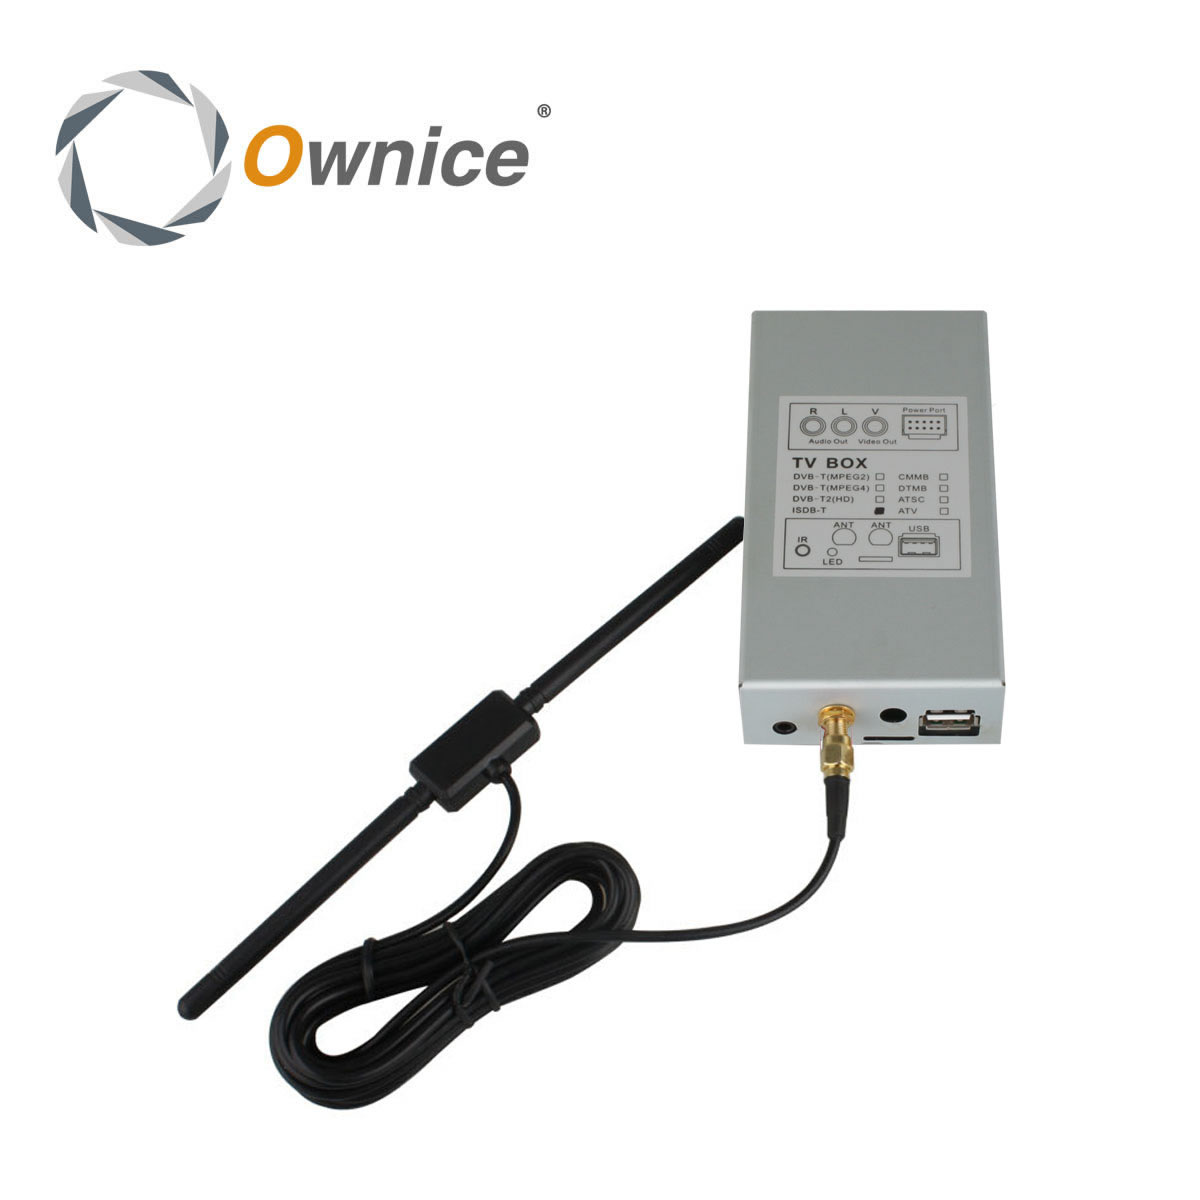 Special ISDB-T  Digital TV Box For Ownice Car DVD.The Item Just Fit For Our Car DVD